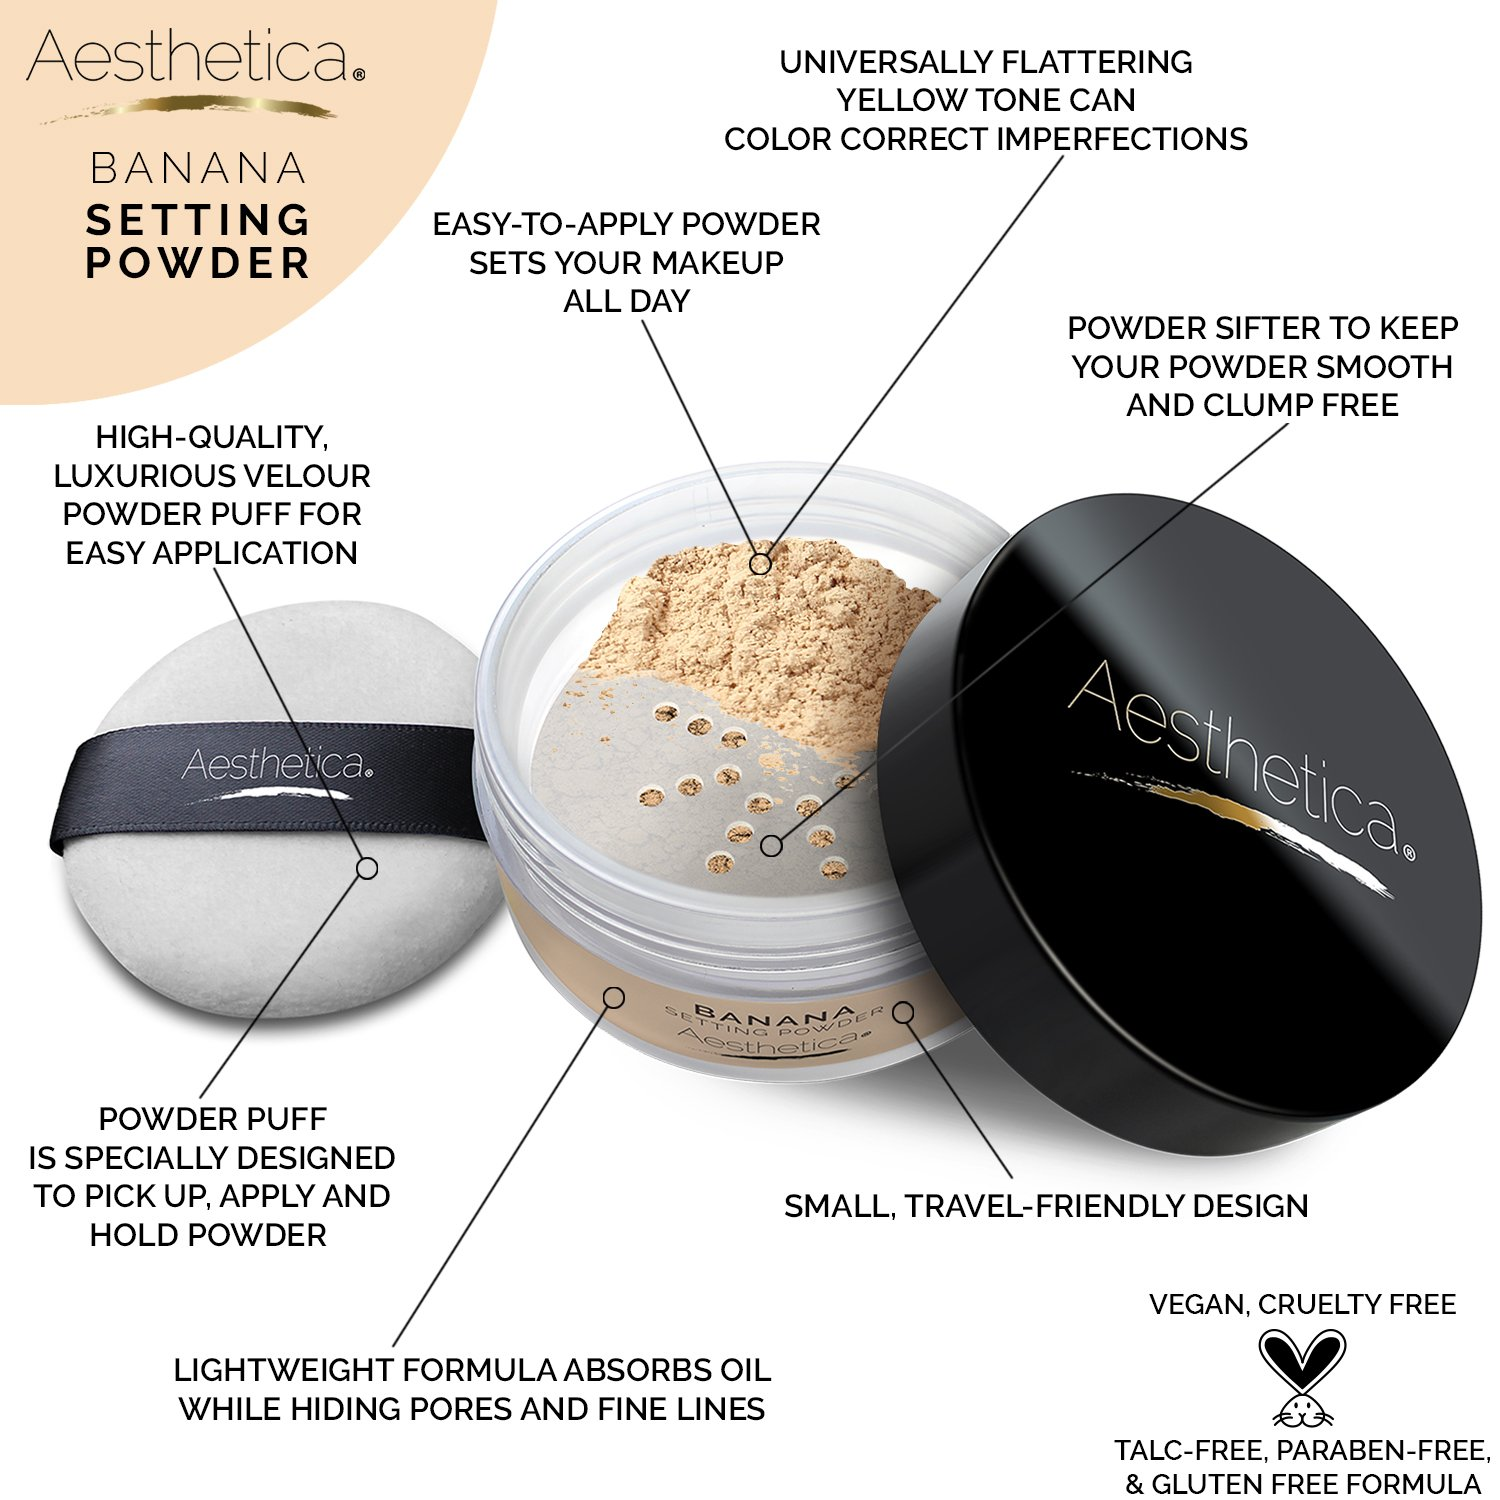 Highlighter For A Superior Matte Finish   Flash Friendly  Includes Luxurious Velour Puff For Flawless Application :  Beauty